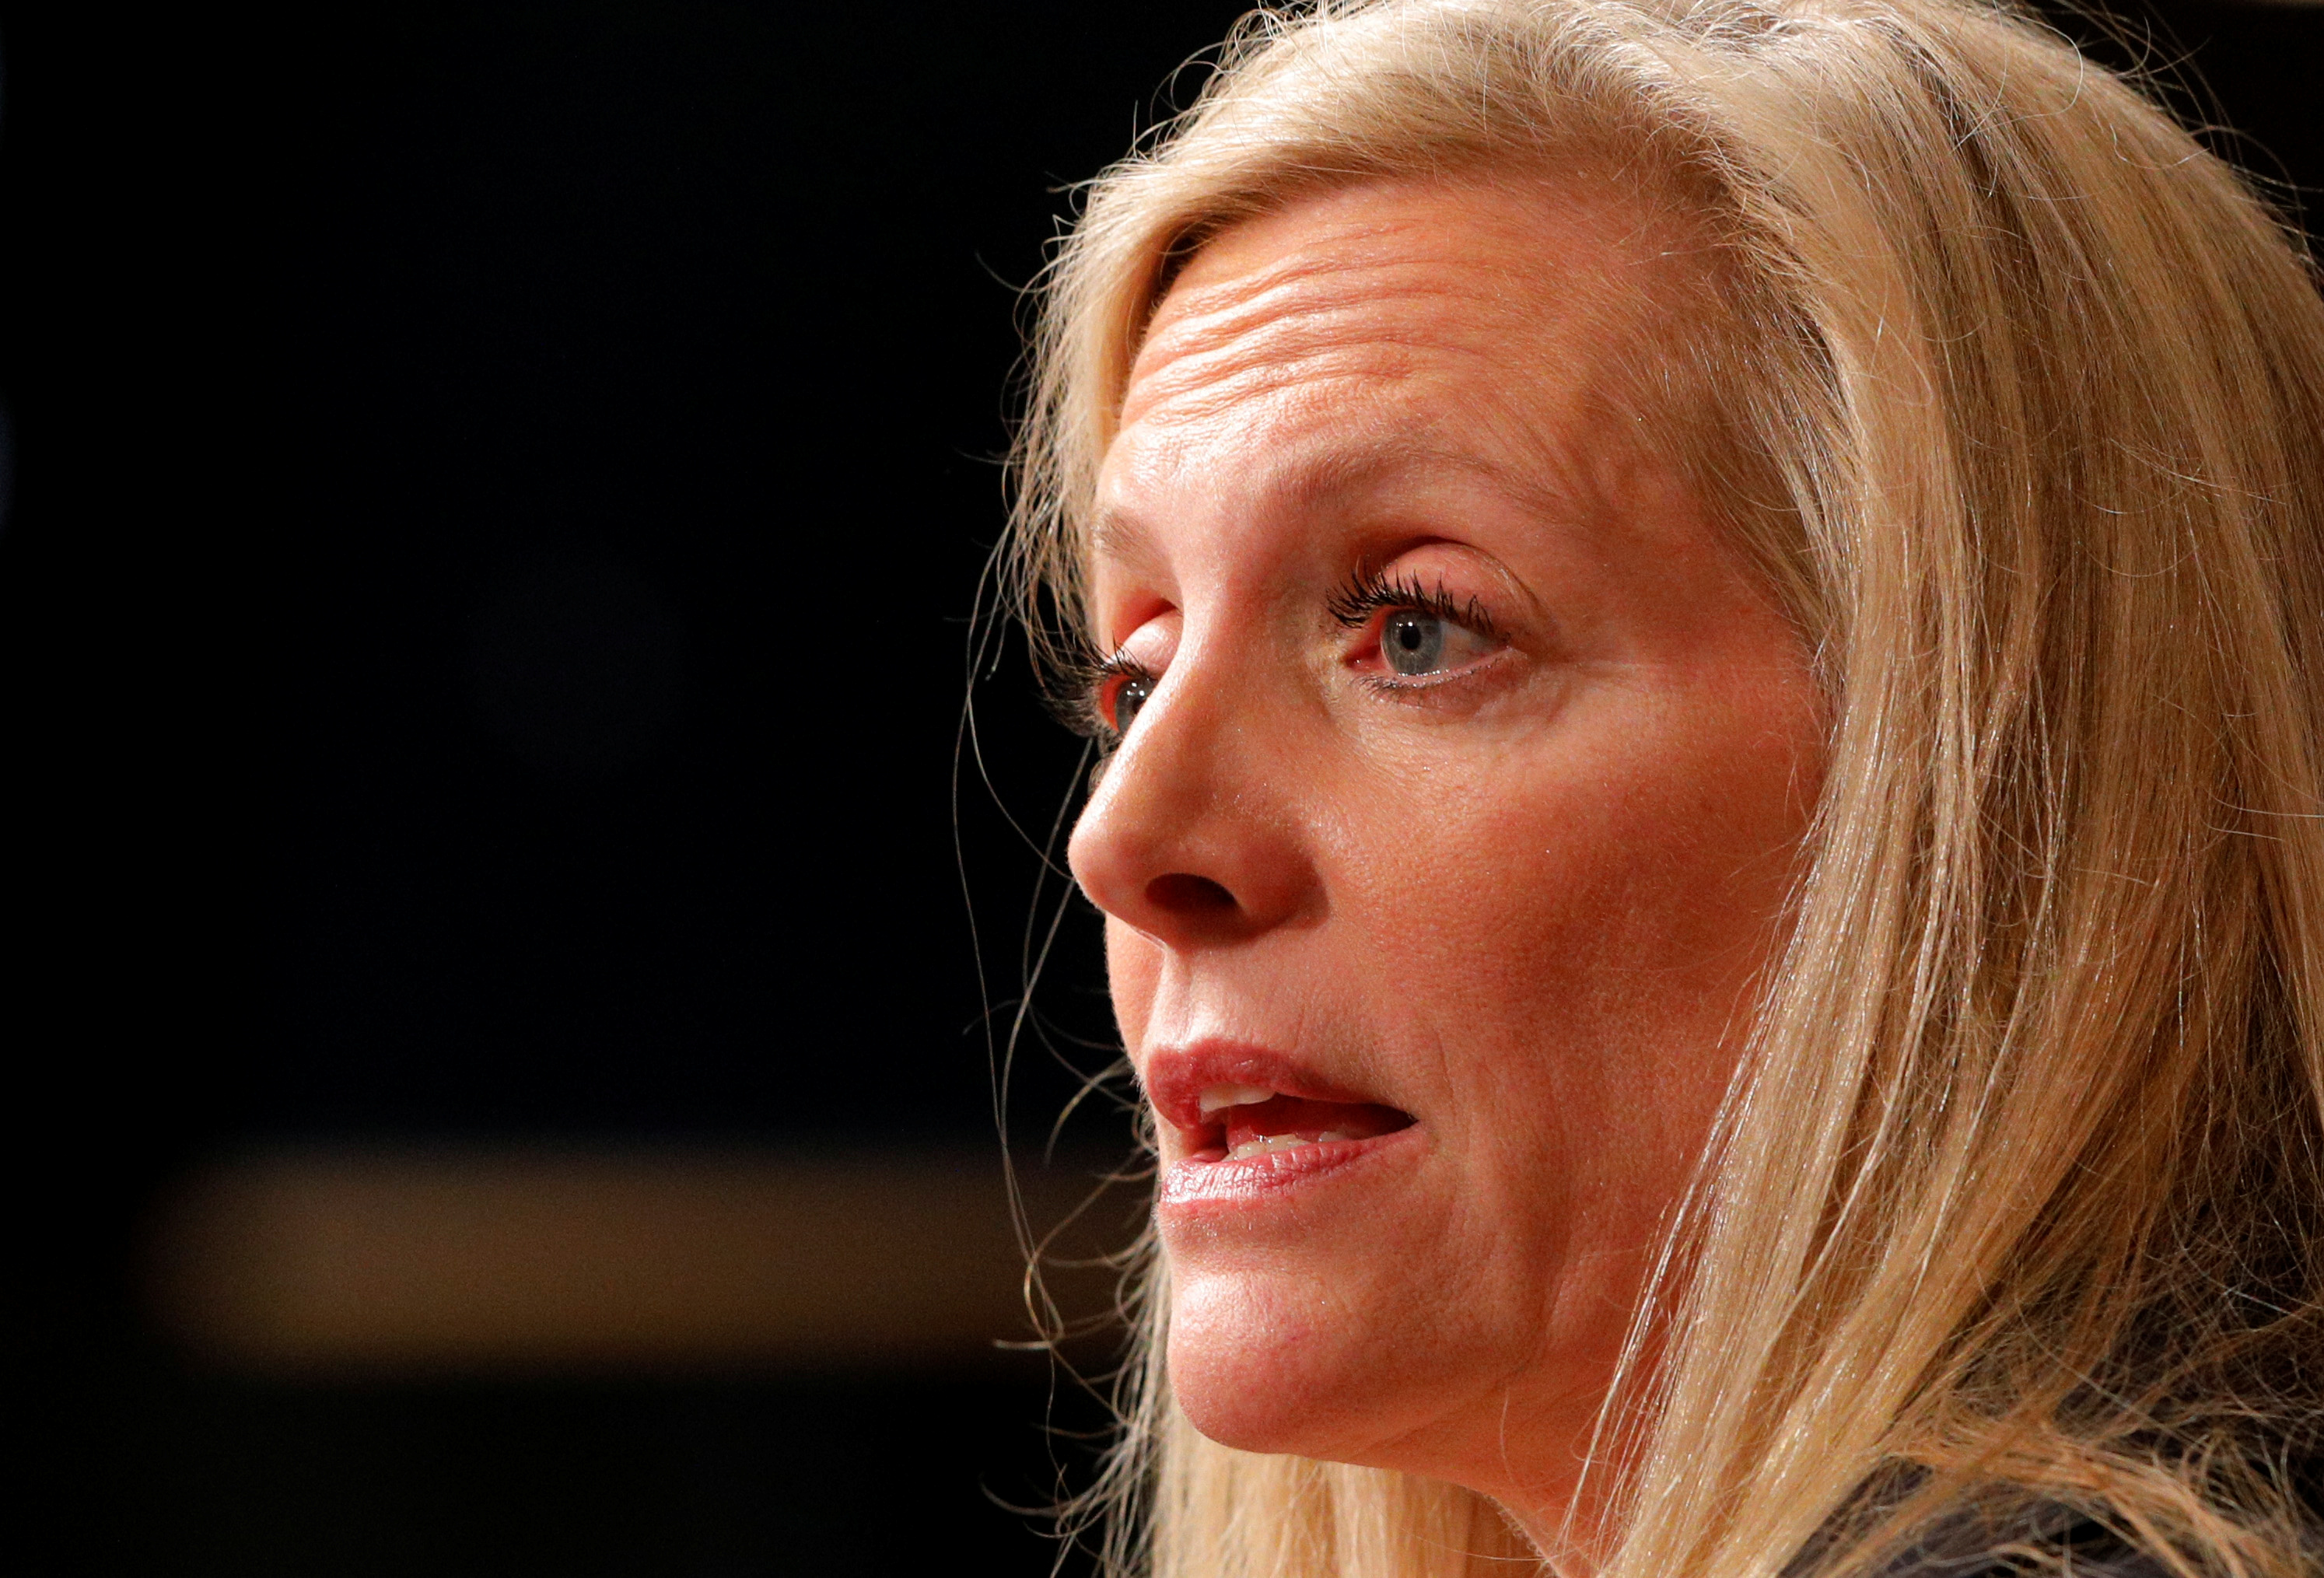 Federal Reserve Board Governor Lael Brainard speaks at the John F. Kennedy School of Government at Harvard University in Cambridge, Massachusetts, U.S., March 1, 2017. REUTERS/Brian Snyder